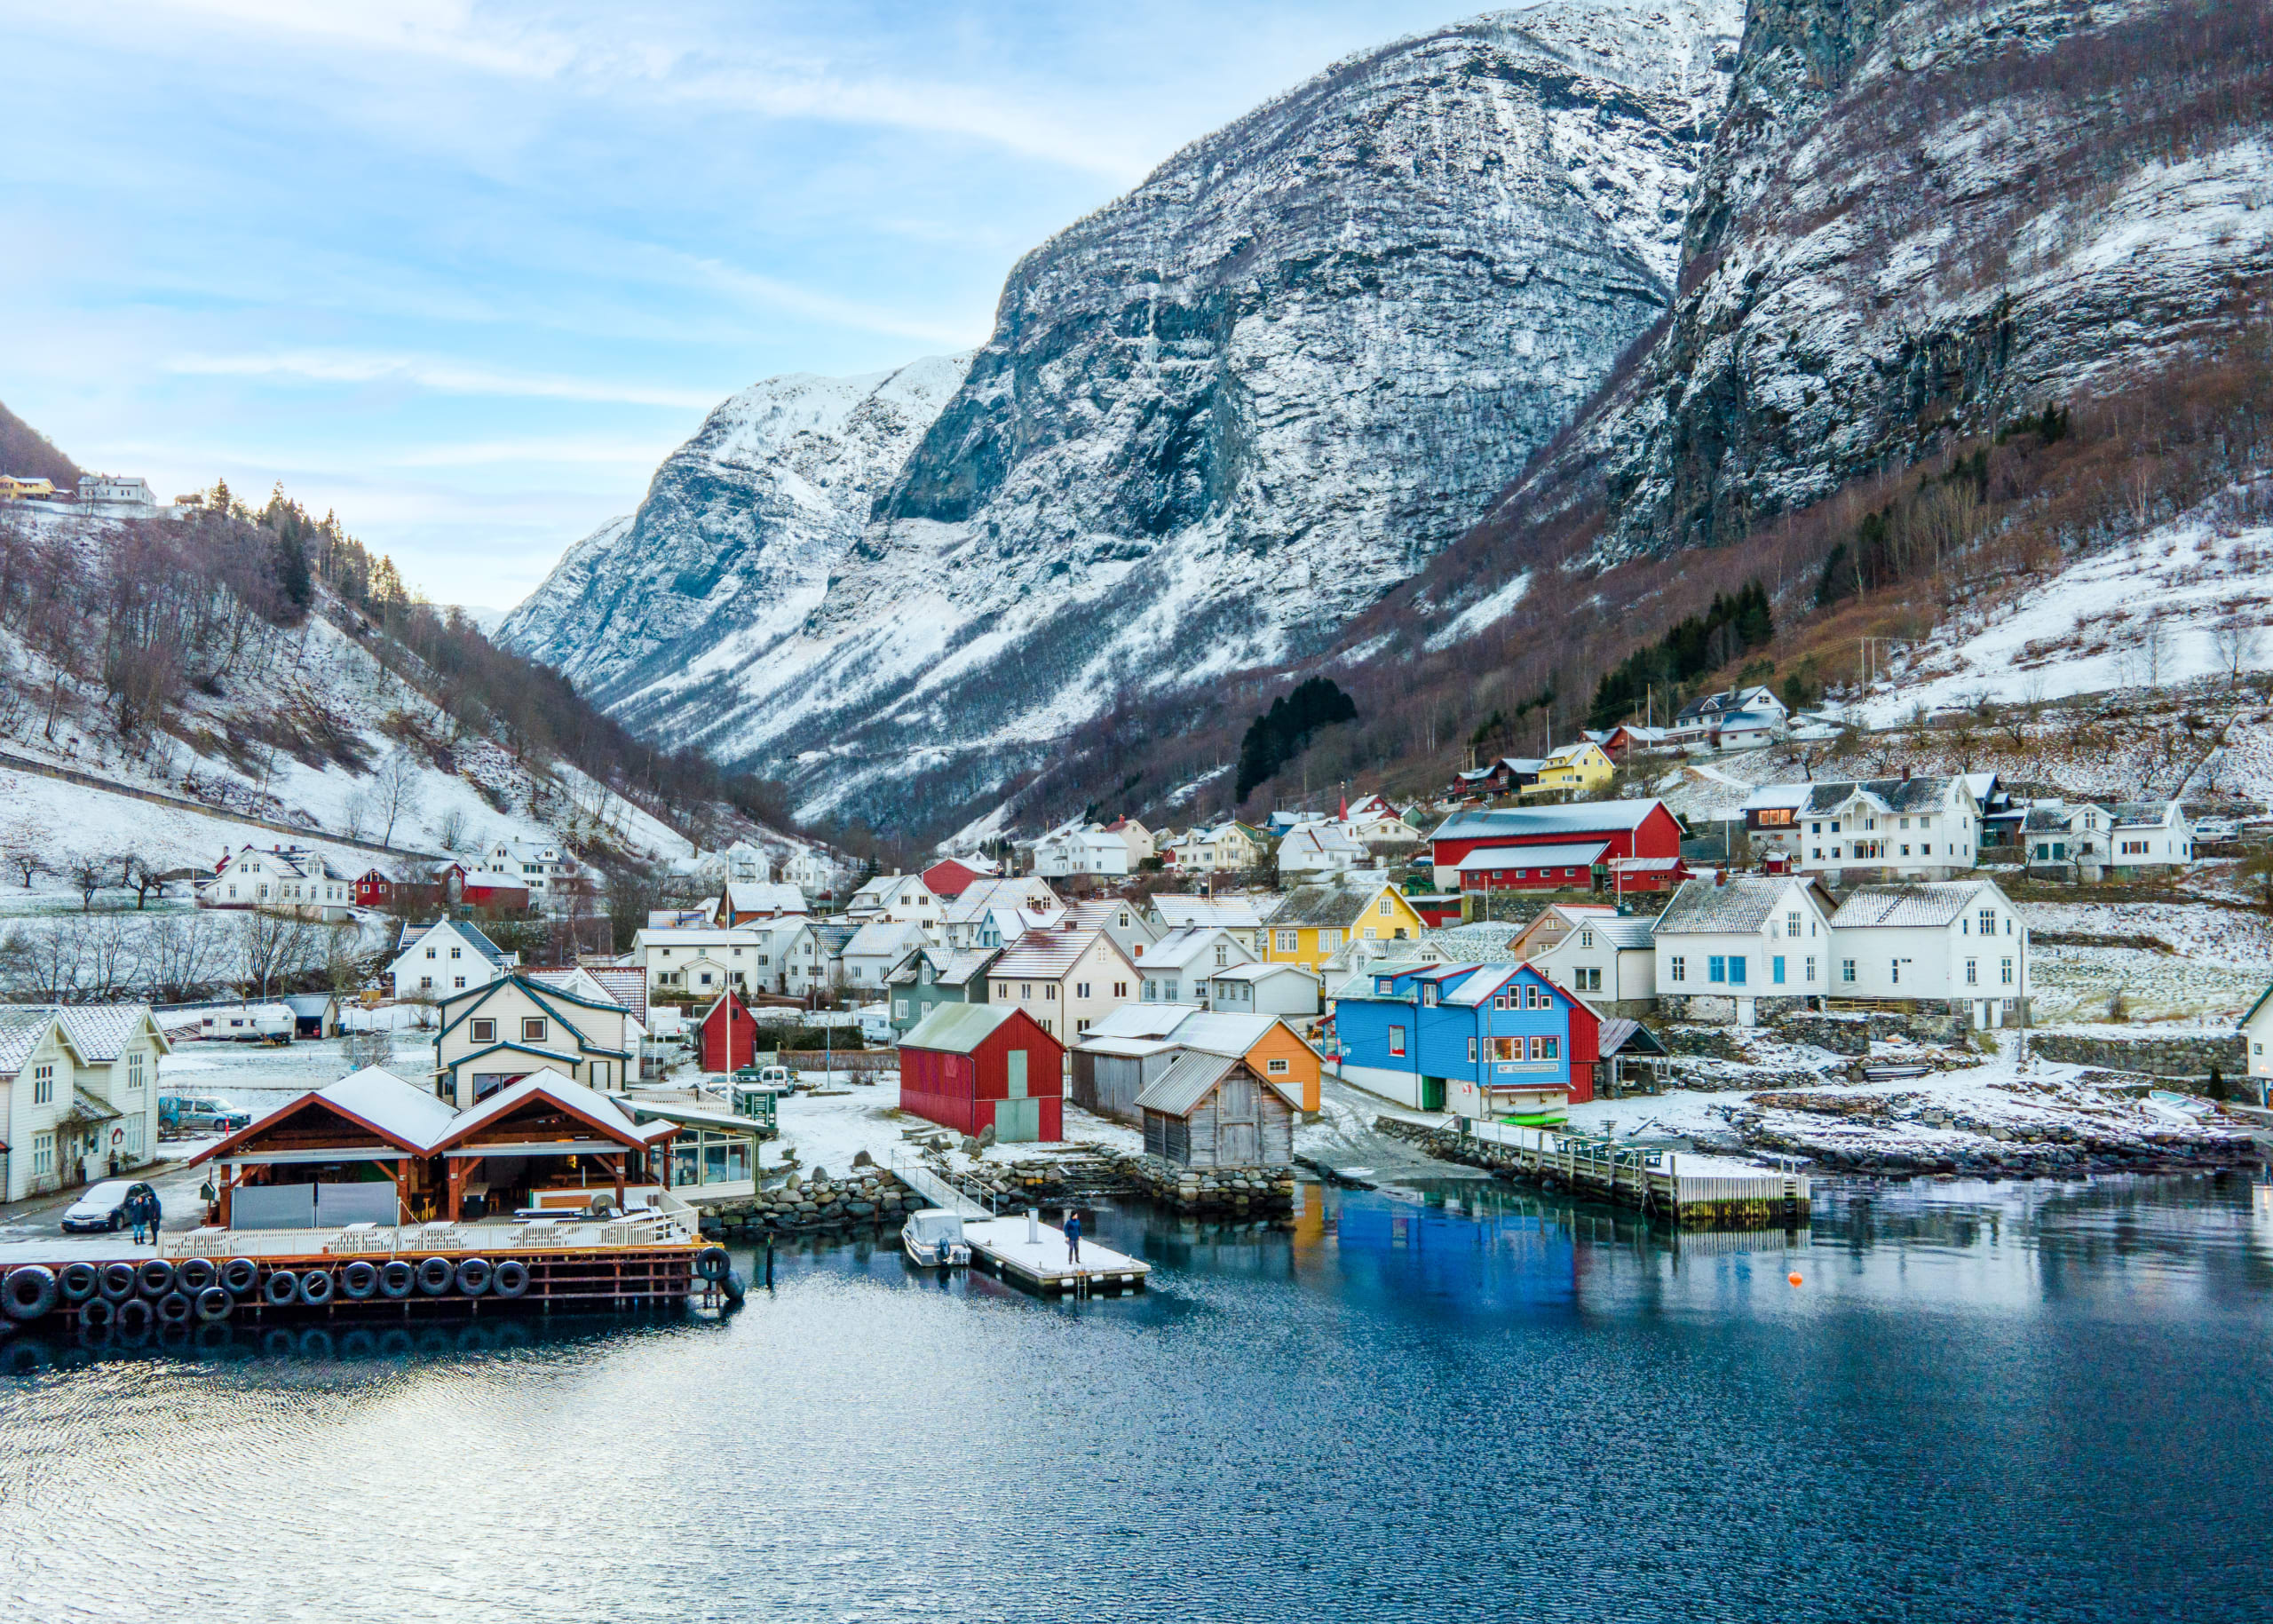 Undredal at winter